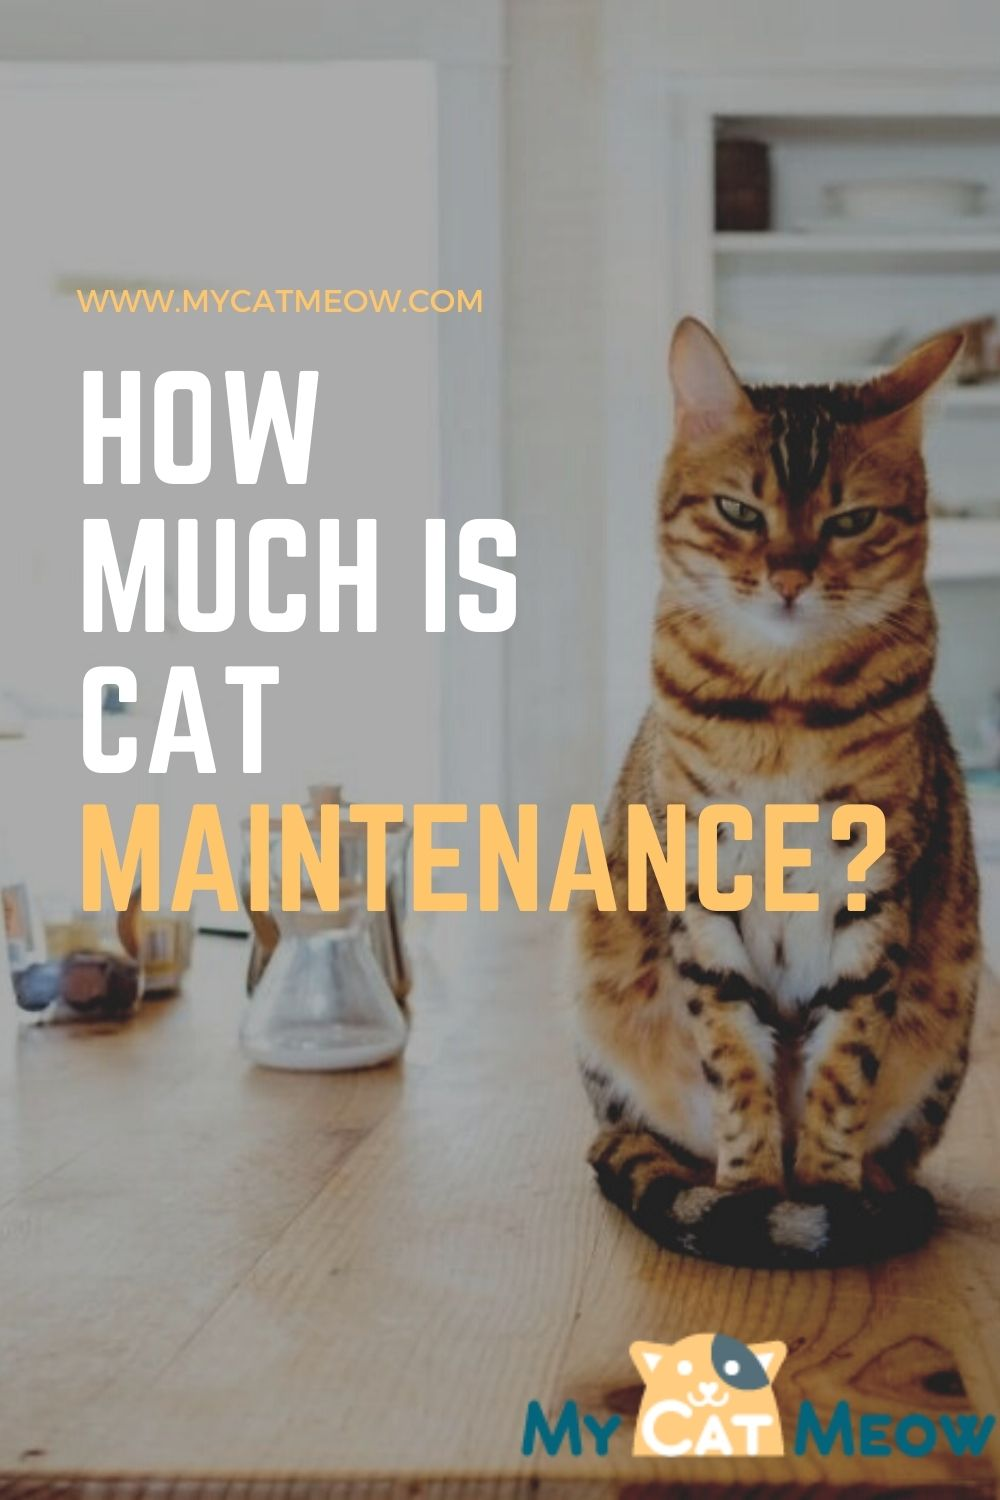 How much maintenance is a cat